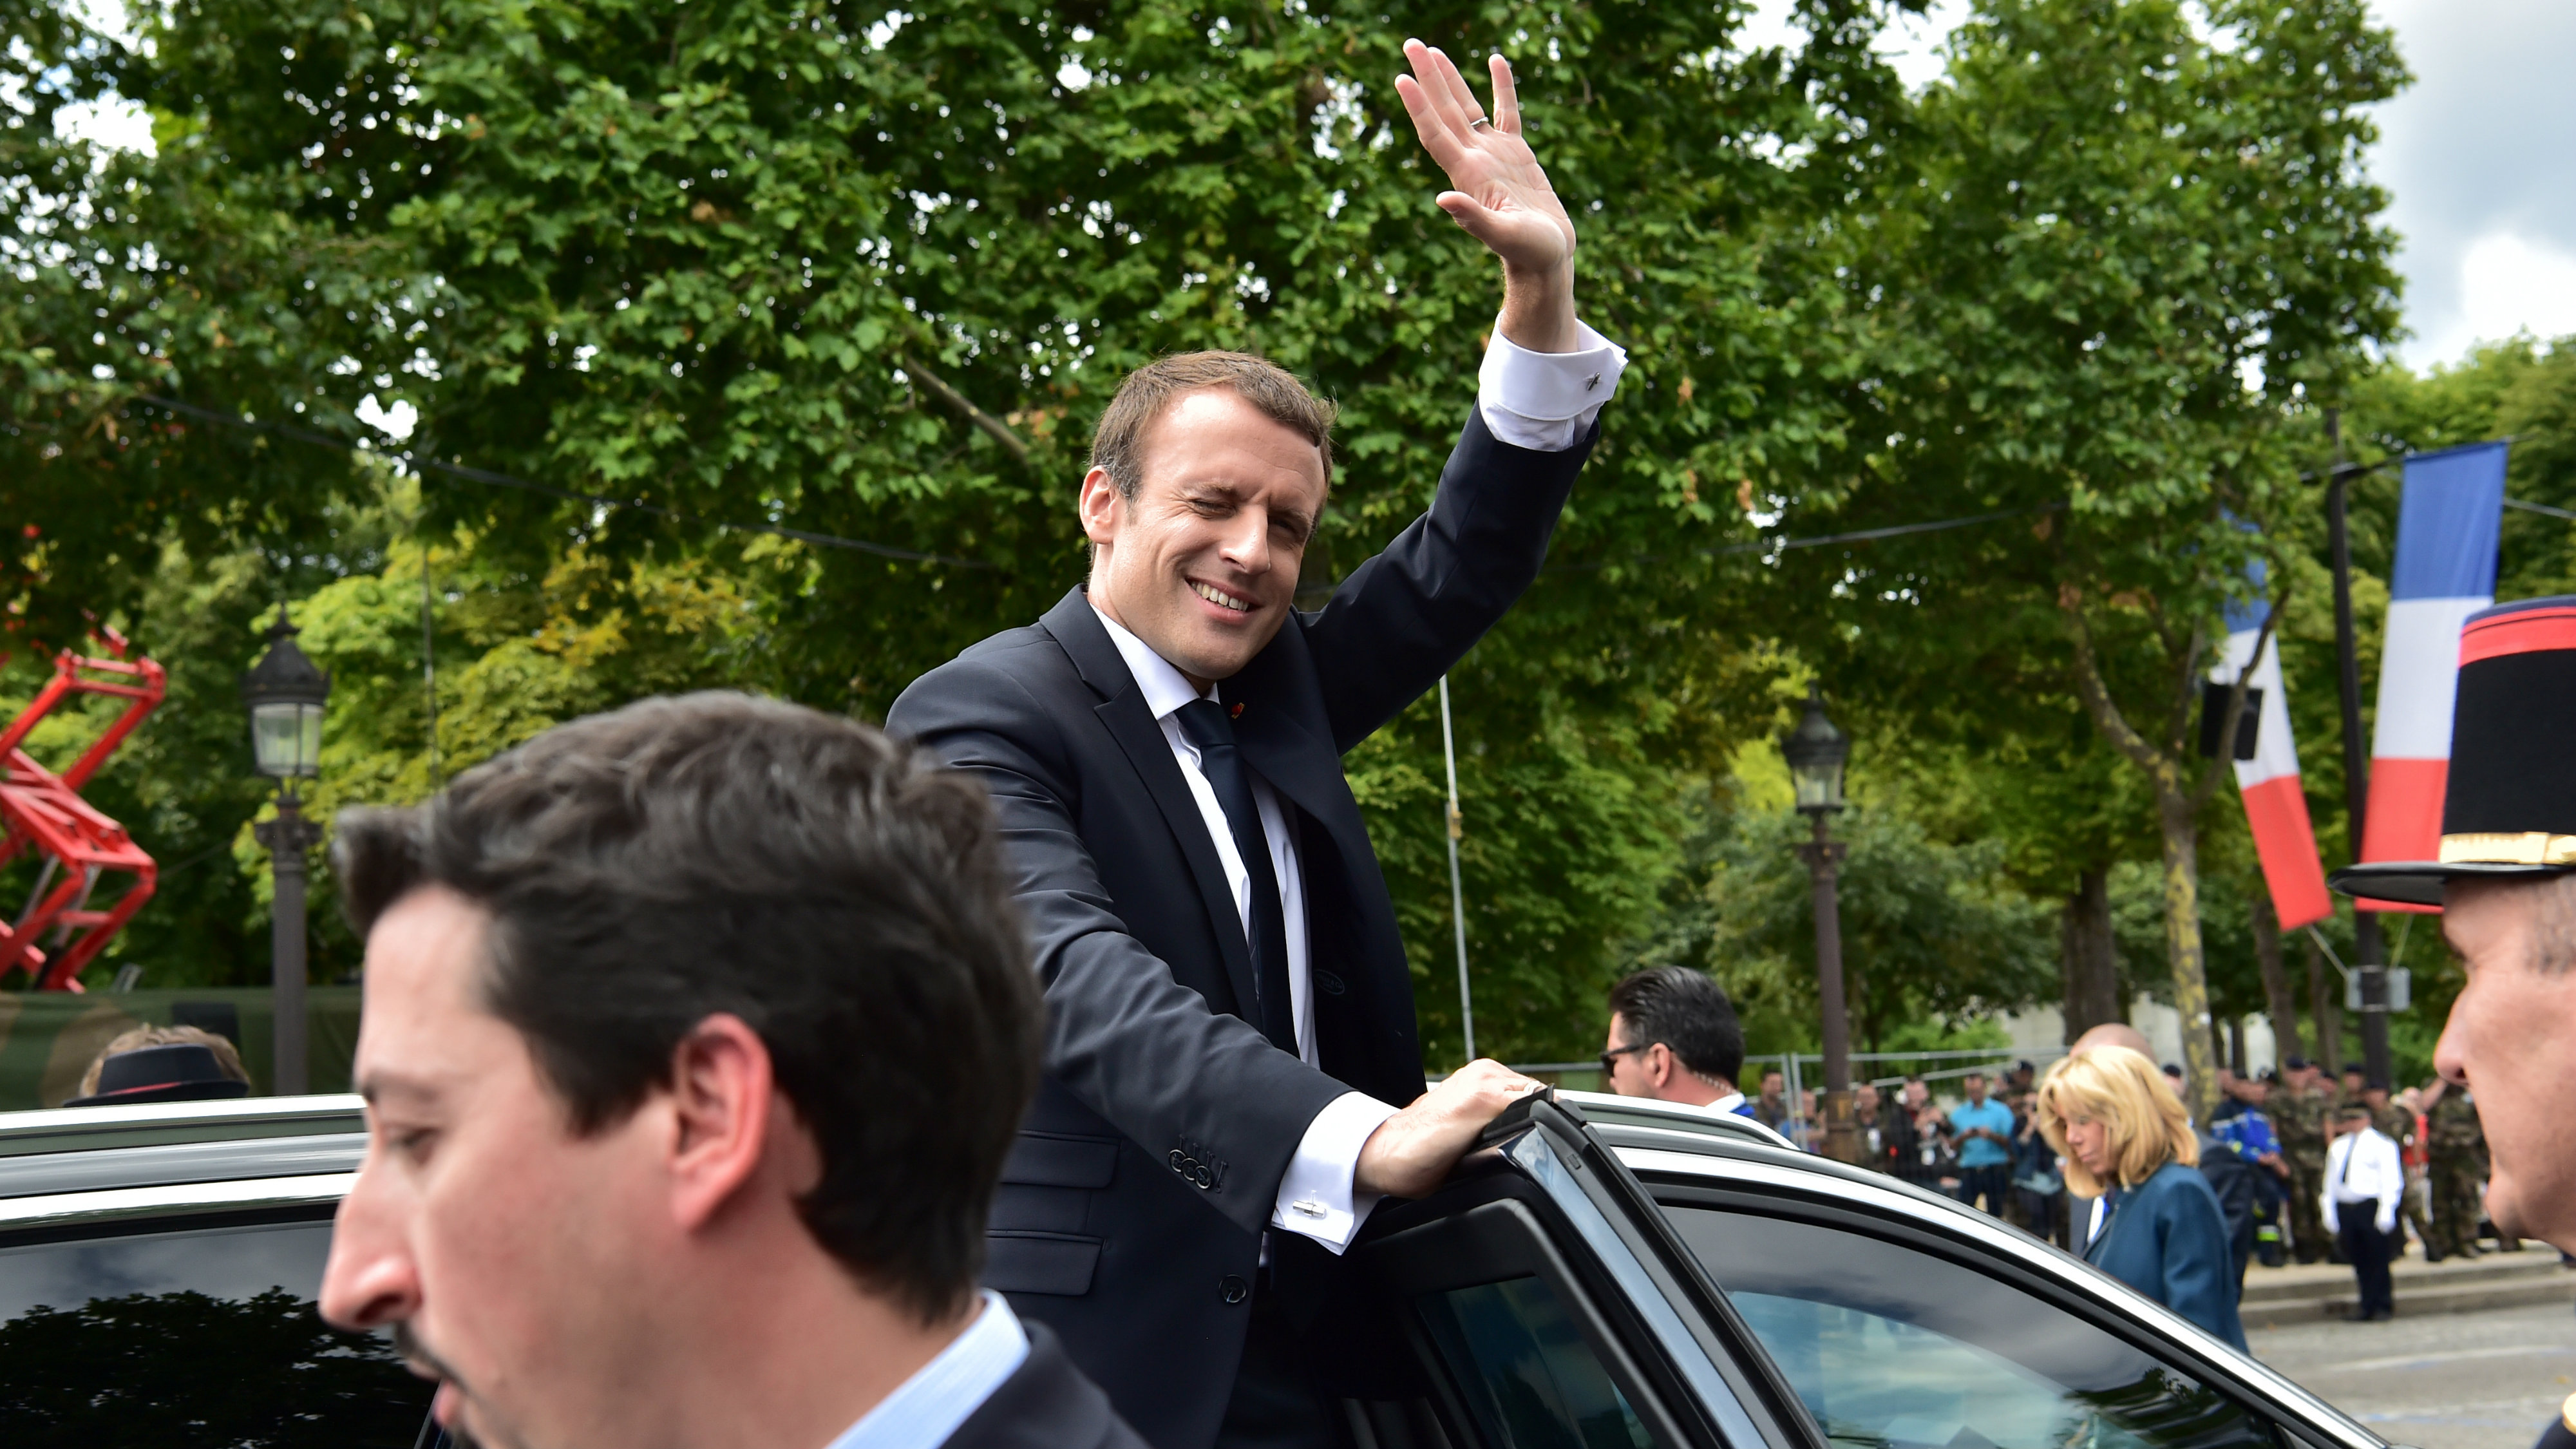 French President Emmanuel Macron waves as he steps into a car after the traditional Bastille Day military parade on the Champs-Elysees avenue in Paris, France, July 14, 2017